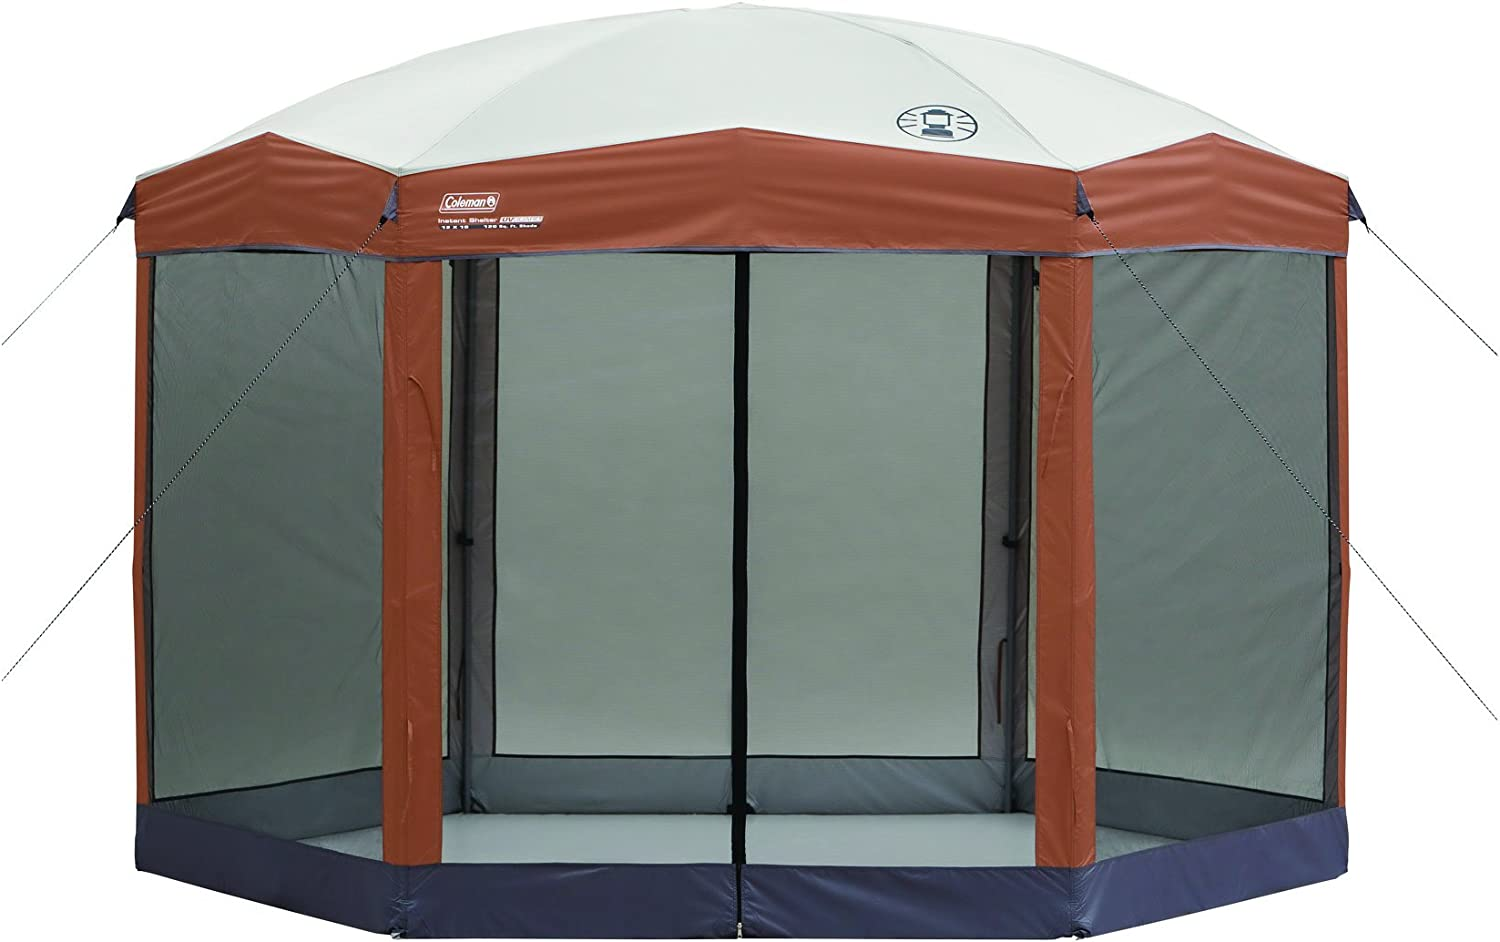 Coleman Screened Canopy Tent with Instant Setup | Outdoor Canopy and Sun Shade with 1 Minute Set Up: Sports & Outdoors